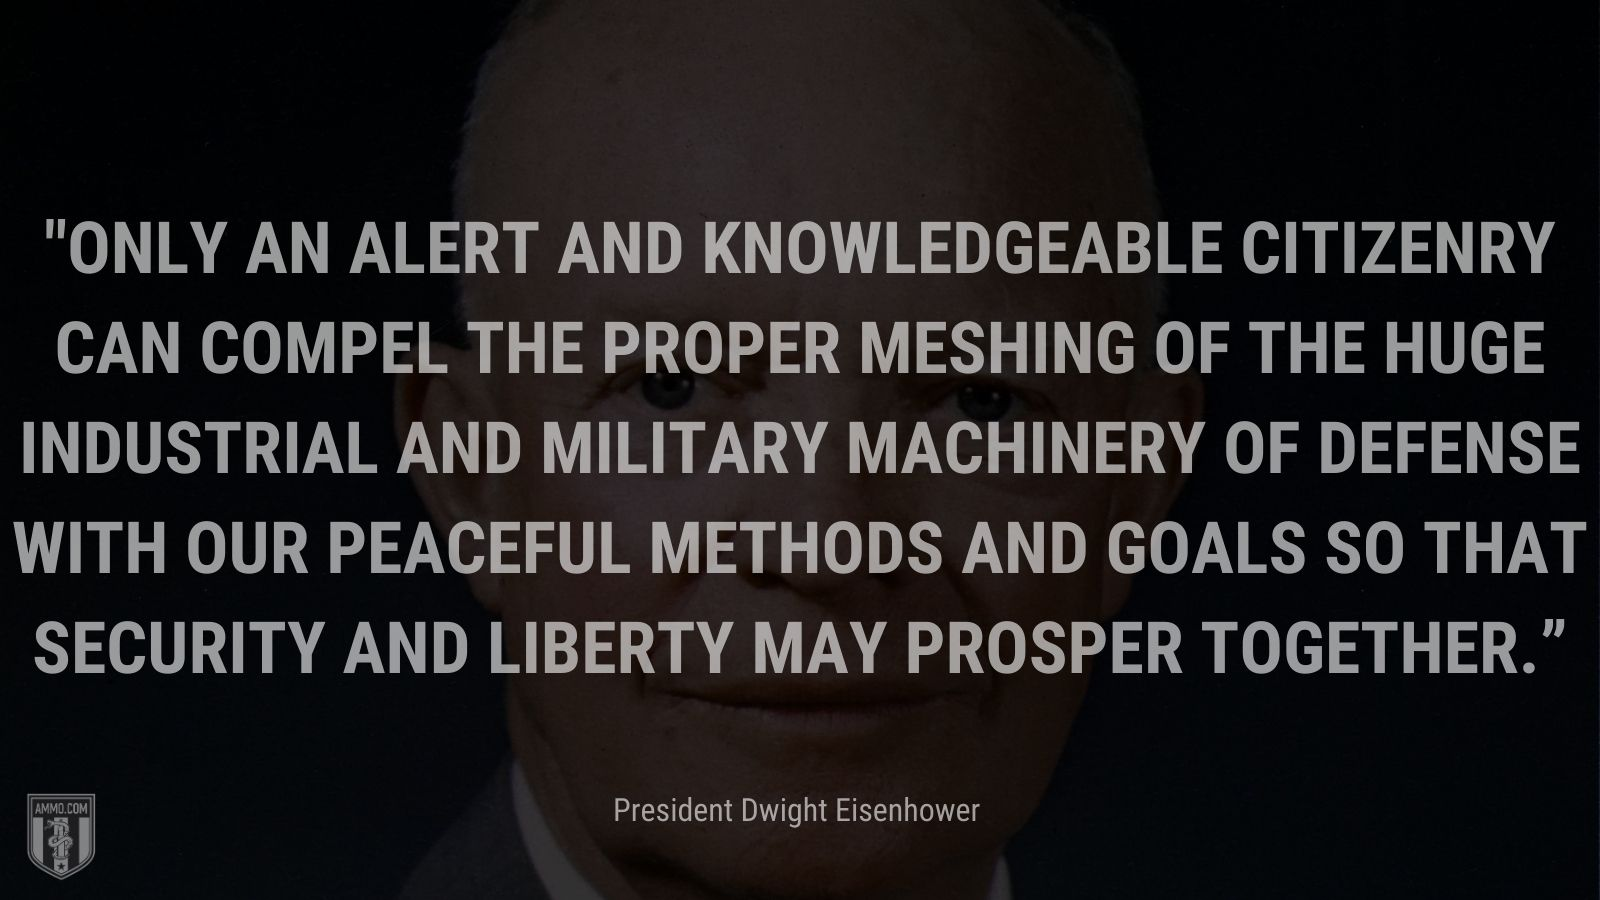 """""""Only an alert and knowledgeable citizenry can compel the proper meshing of the huge industrial and military machinery of defense with our peaceful methods and goals so that security and liberty may prosper together."""" - President Dwight Eisenhower"""